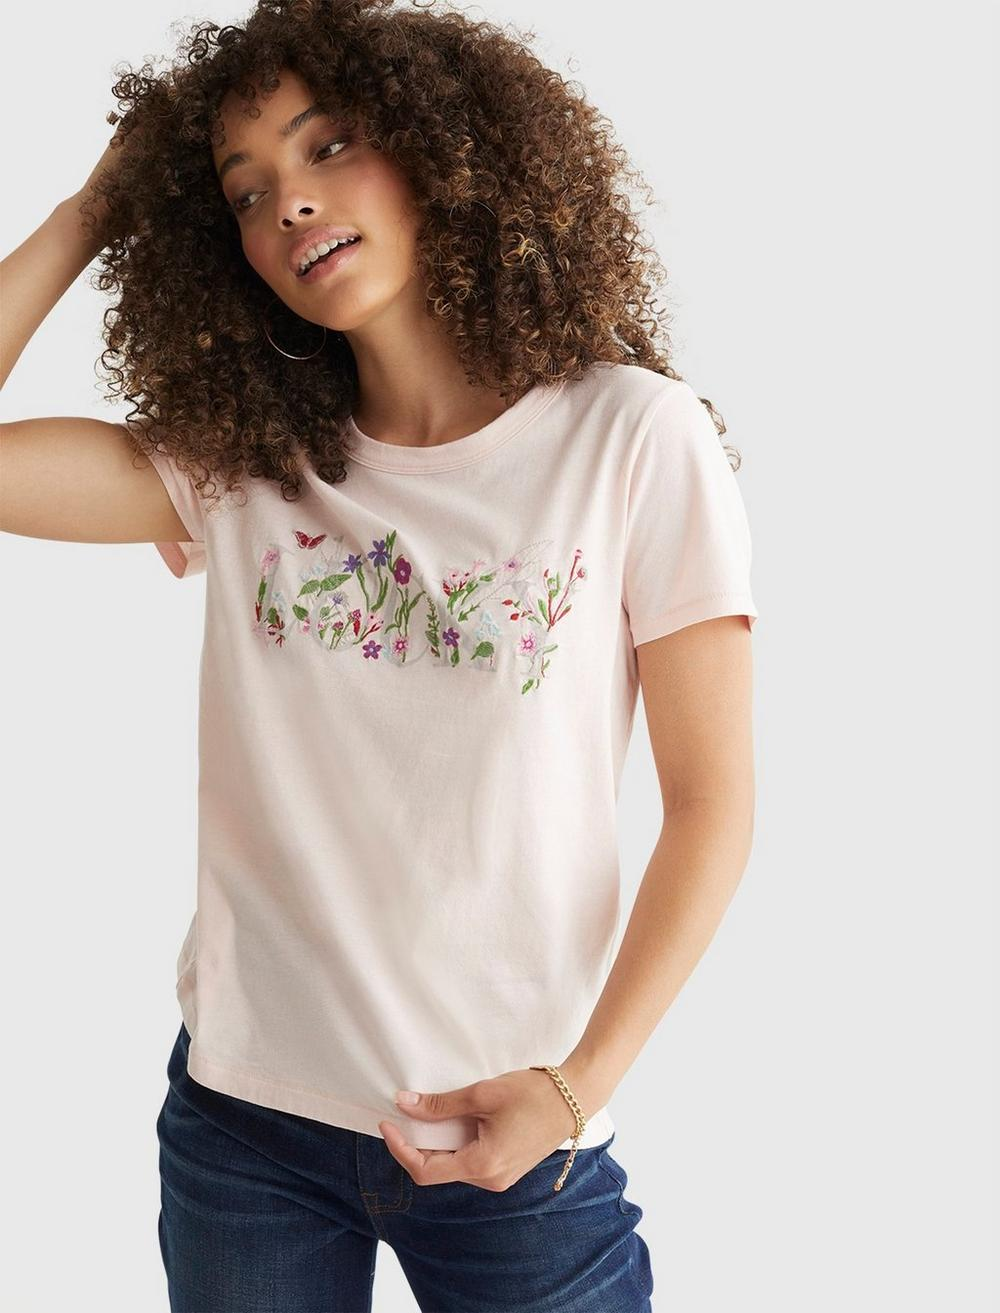 LUCKY EMBROIDERED CLASSIC CREW, image 1